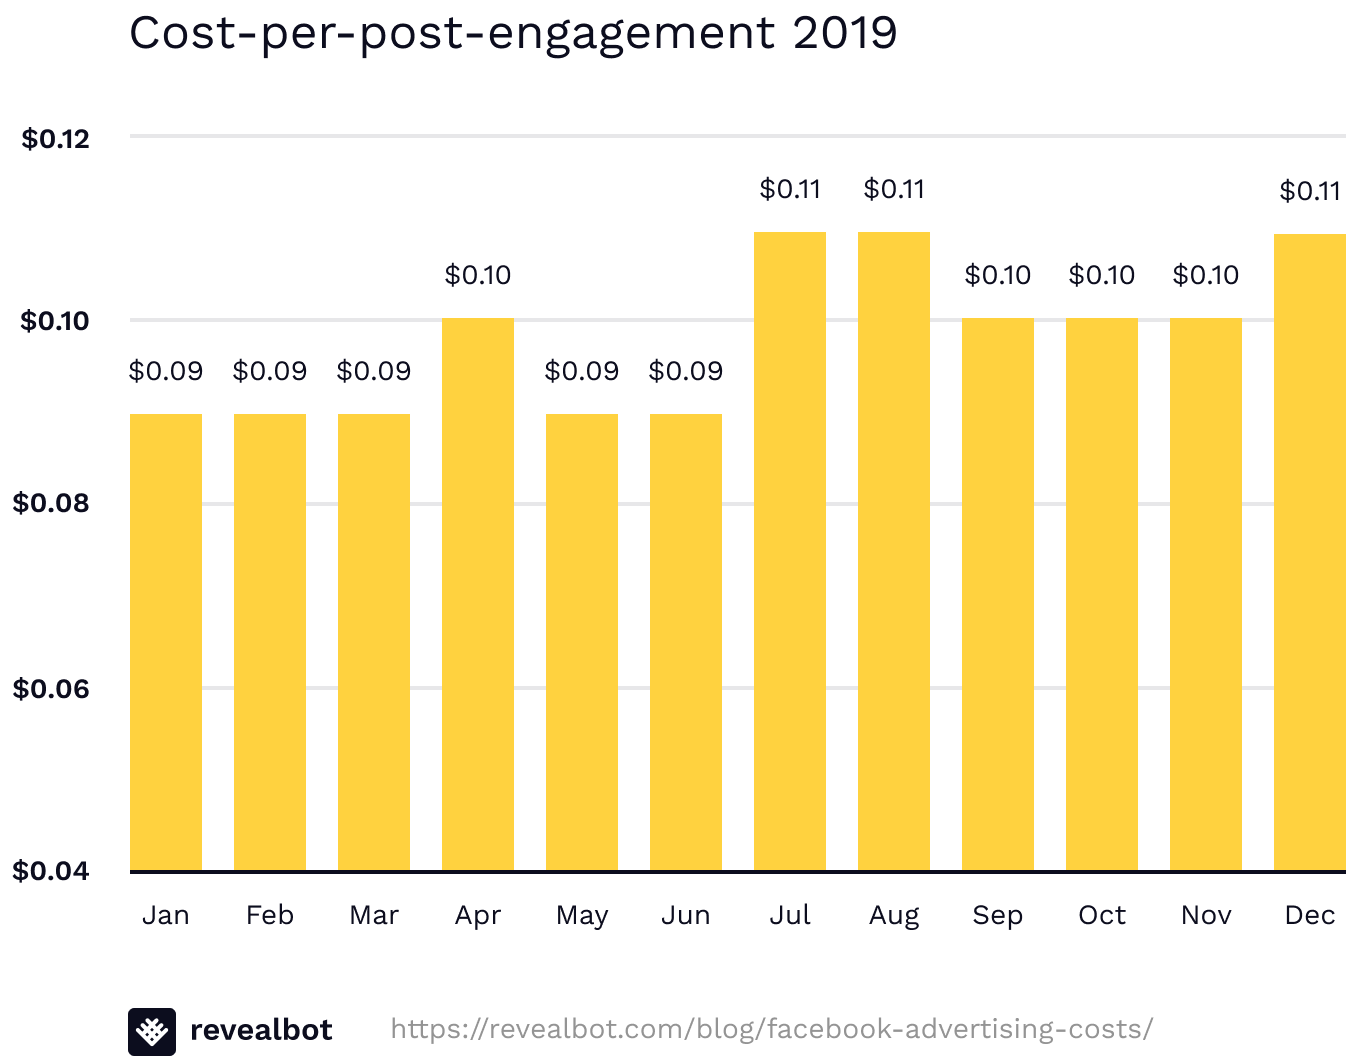 Average cost per engagement for Facebook ads 2019